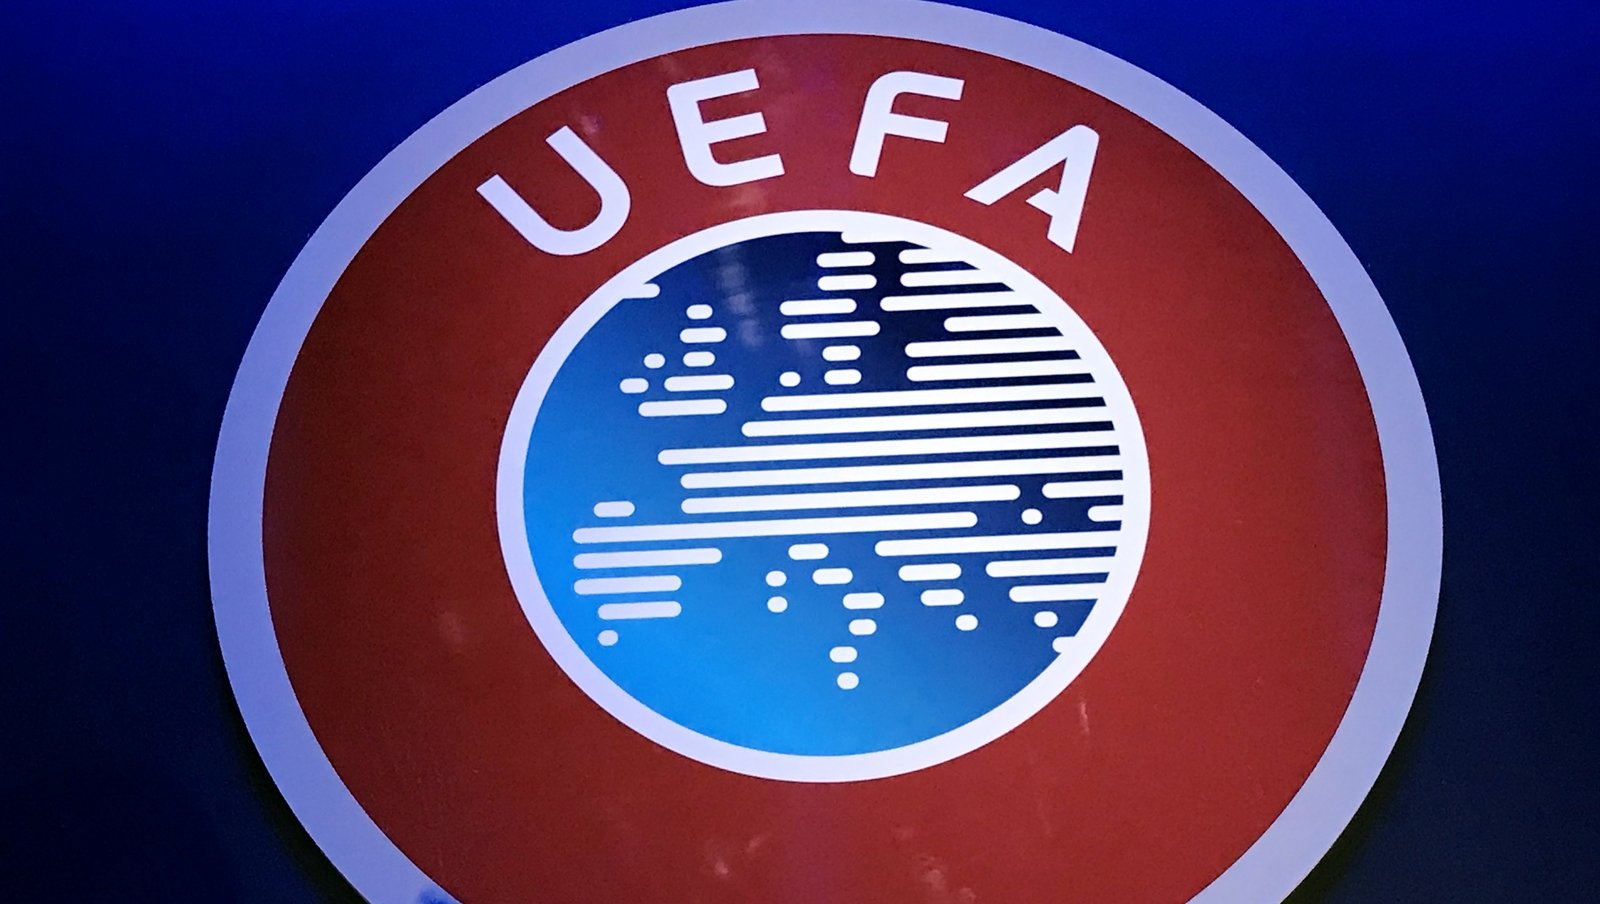 UEFA secures court docket expose to block illegal streaming